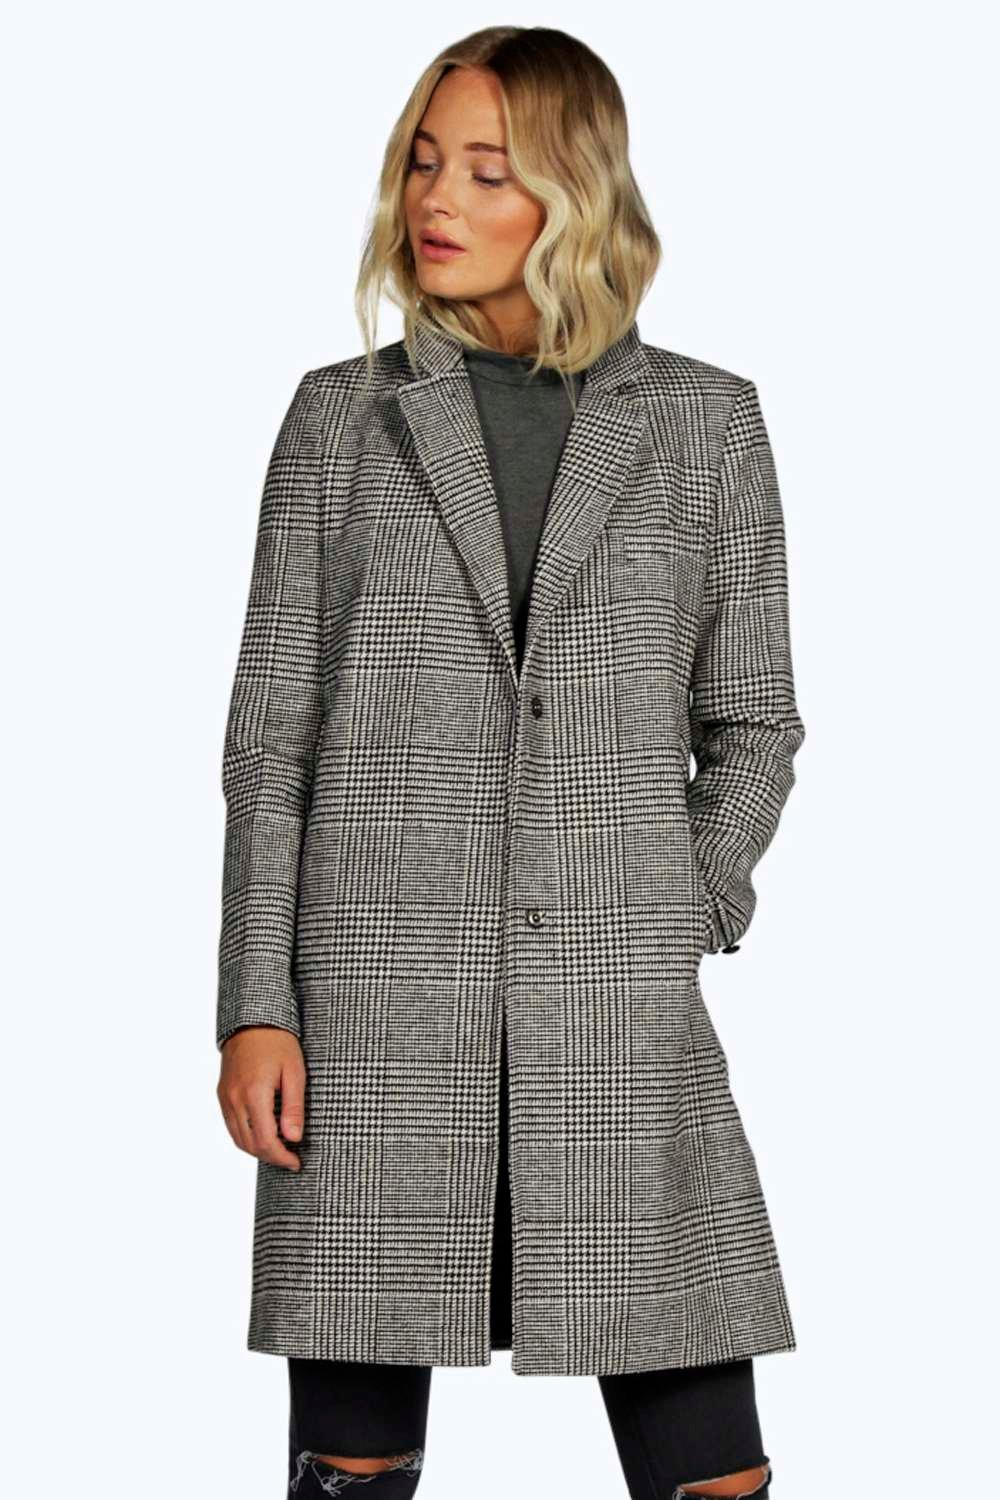 Lara Prince Of Wales Check Coat